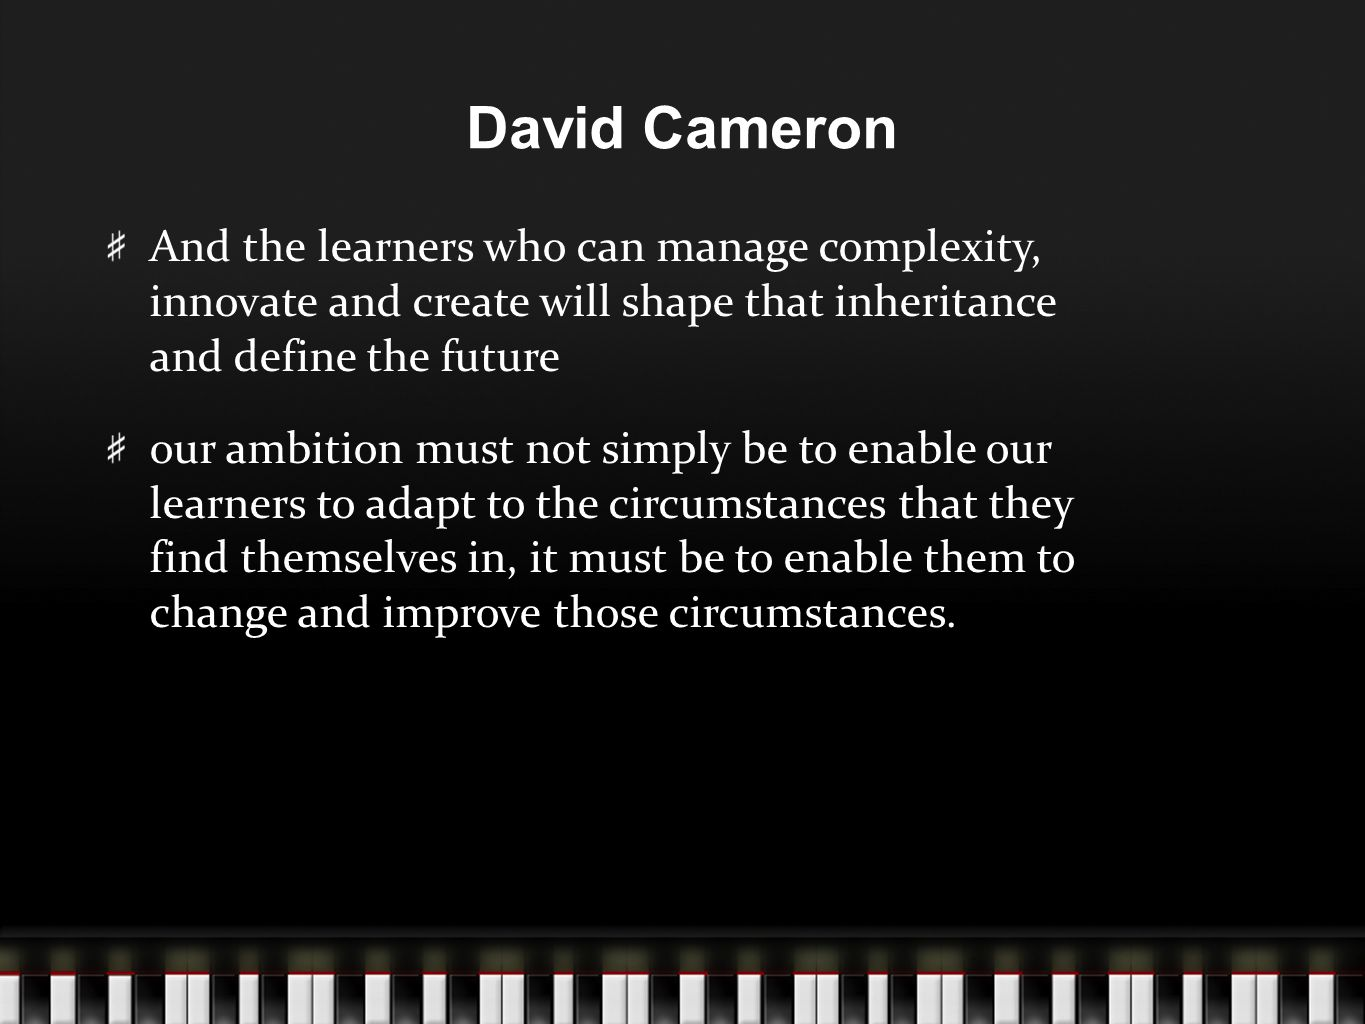 David Cameron And the learners who can manage complexity, innovate and create will shape that inheritance and define the future our ambition must not